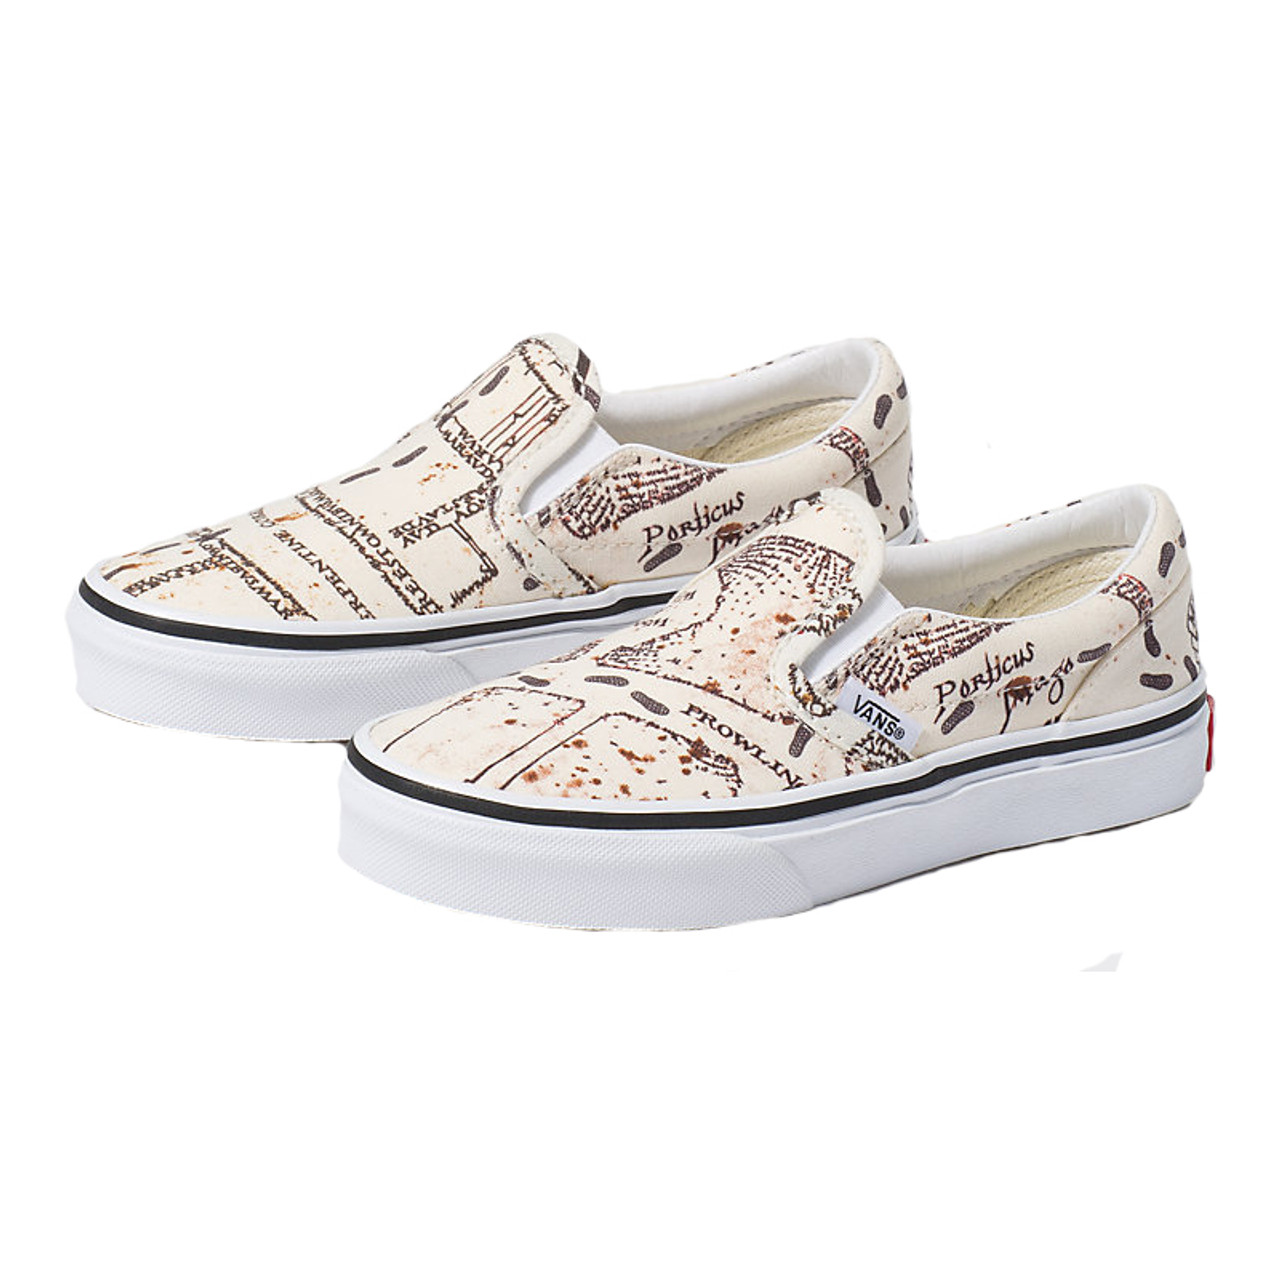 Vans Youth Shoes Classic Slip On Harry PotterMarauders Map